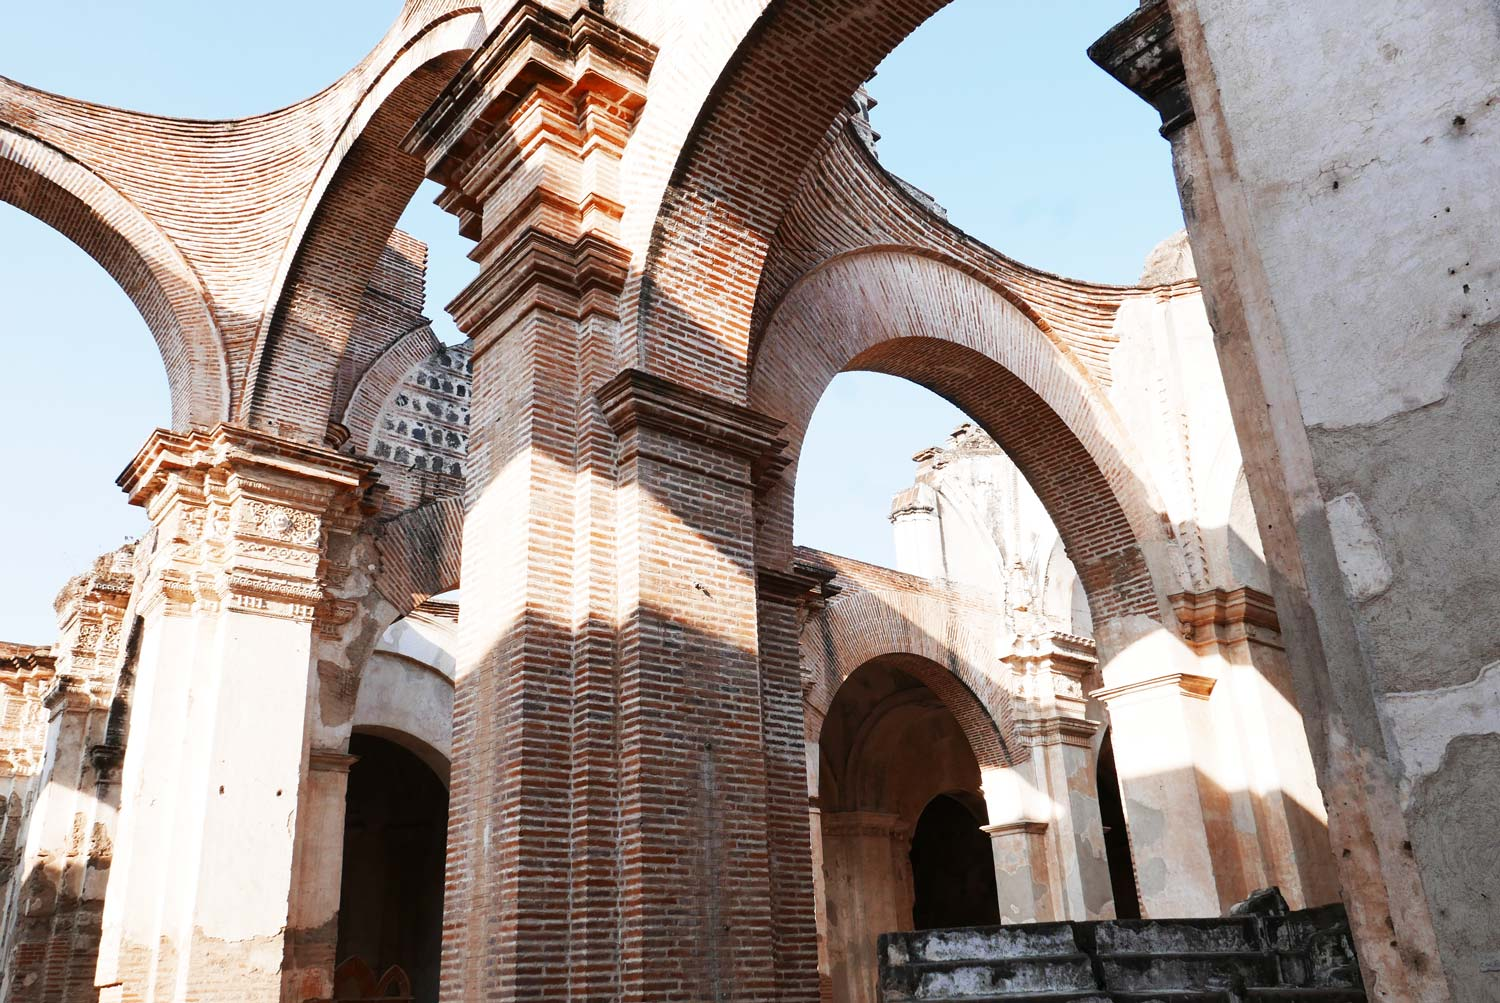 Inside the partly destroyed San Jose cathedral in Antigua Guatemala